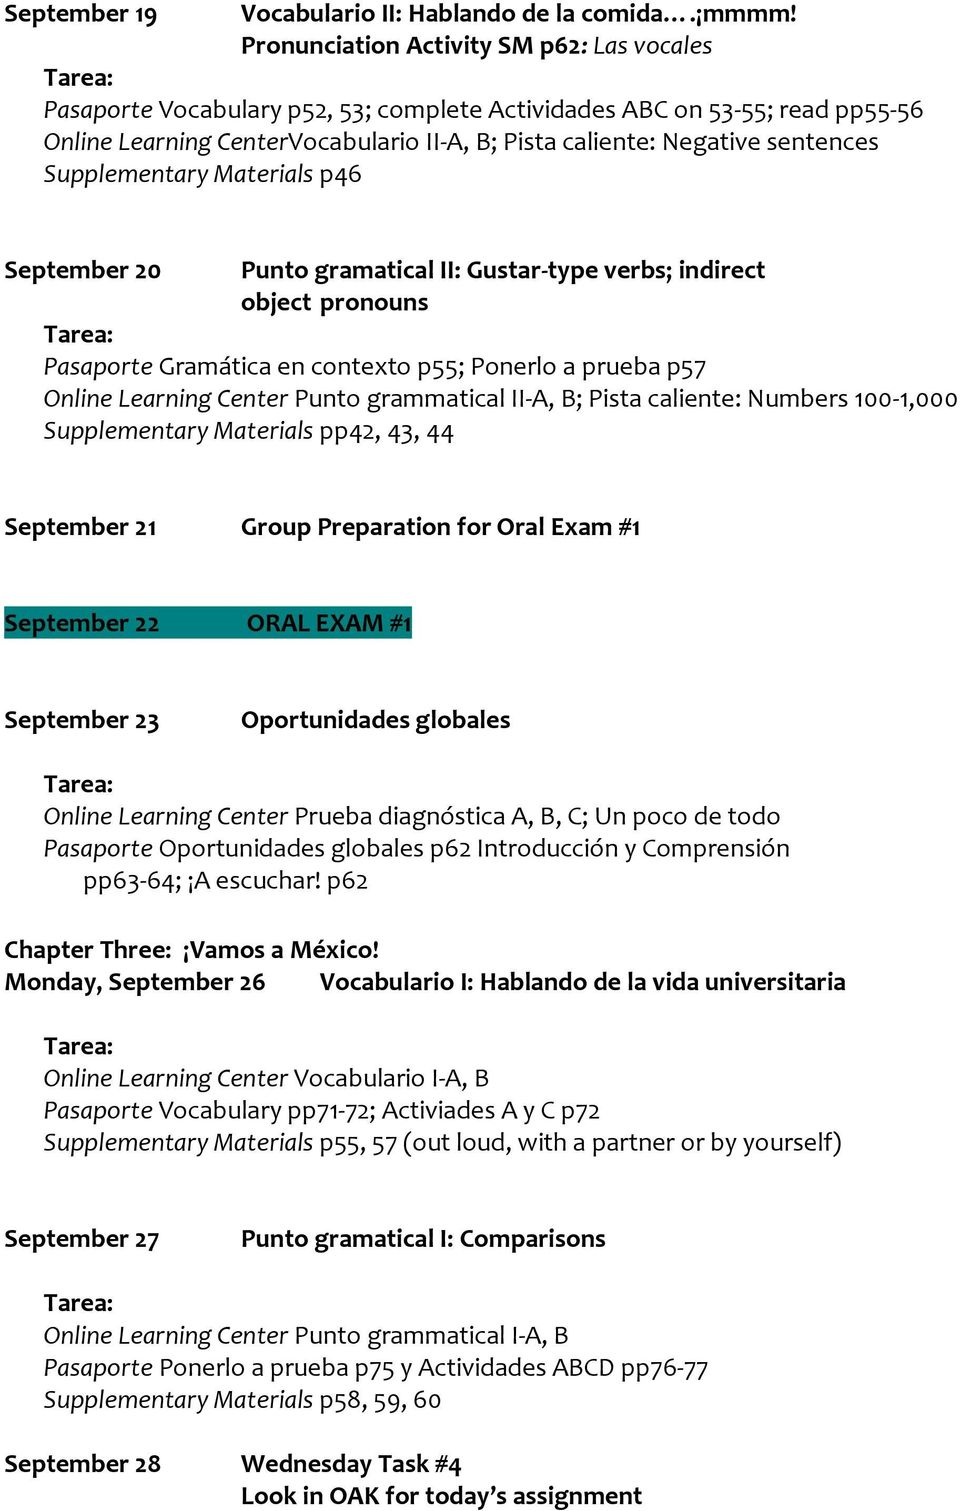 Supplementary Materials p46 September 20 Punto gramatical II: Gustar-type verbs; indirect object pronouns Pasaporte Gramática en contexto p55; Ponerlo a prueba p57 Online Learning Center Punto